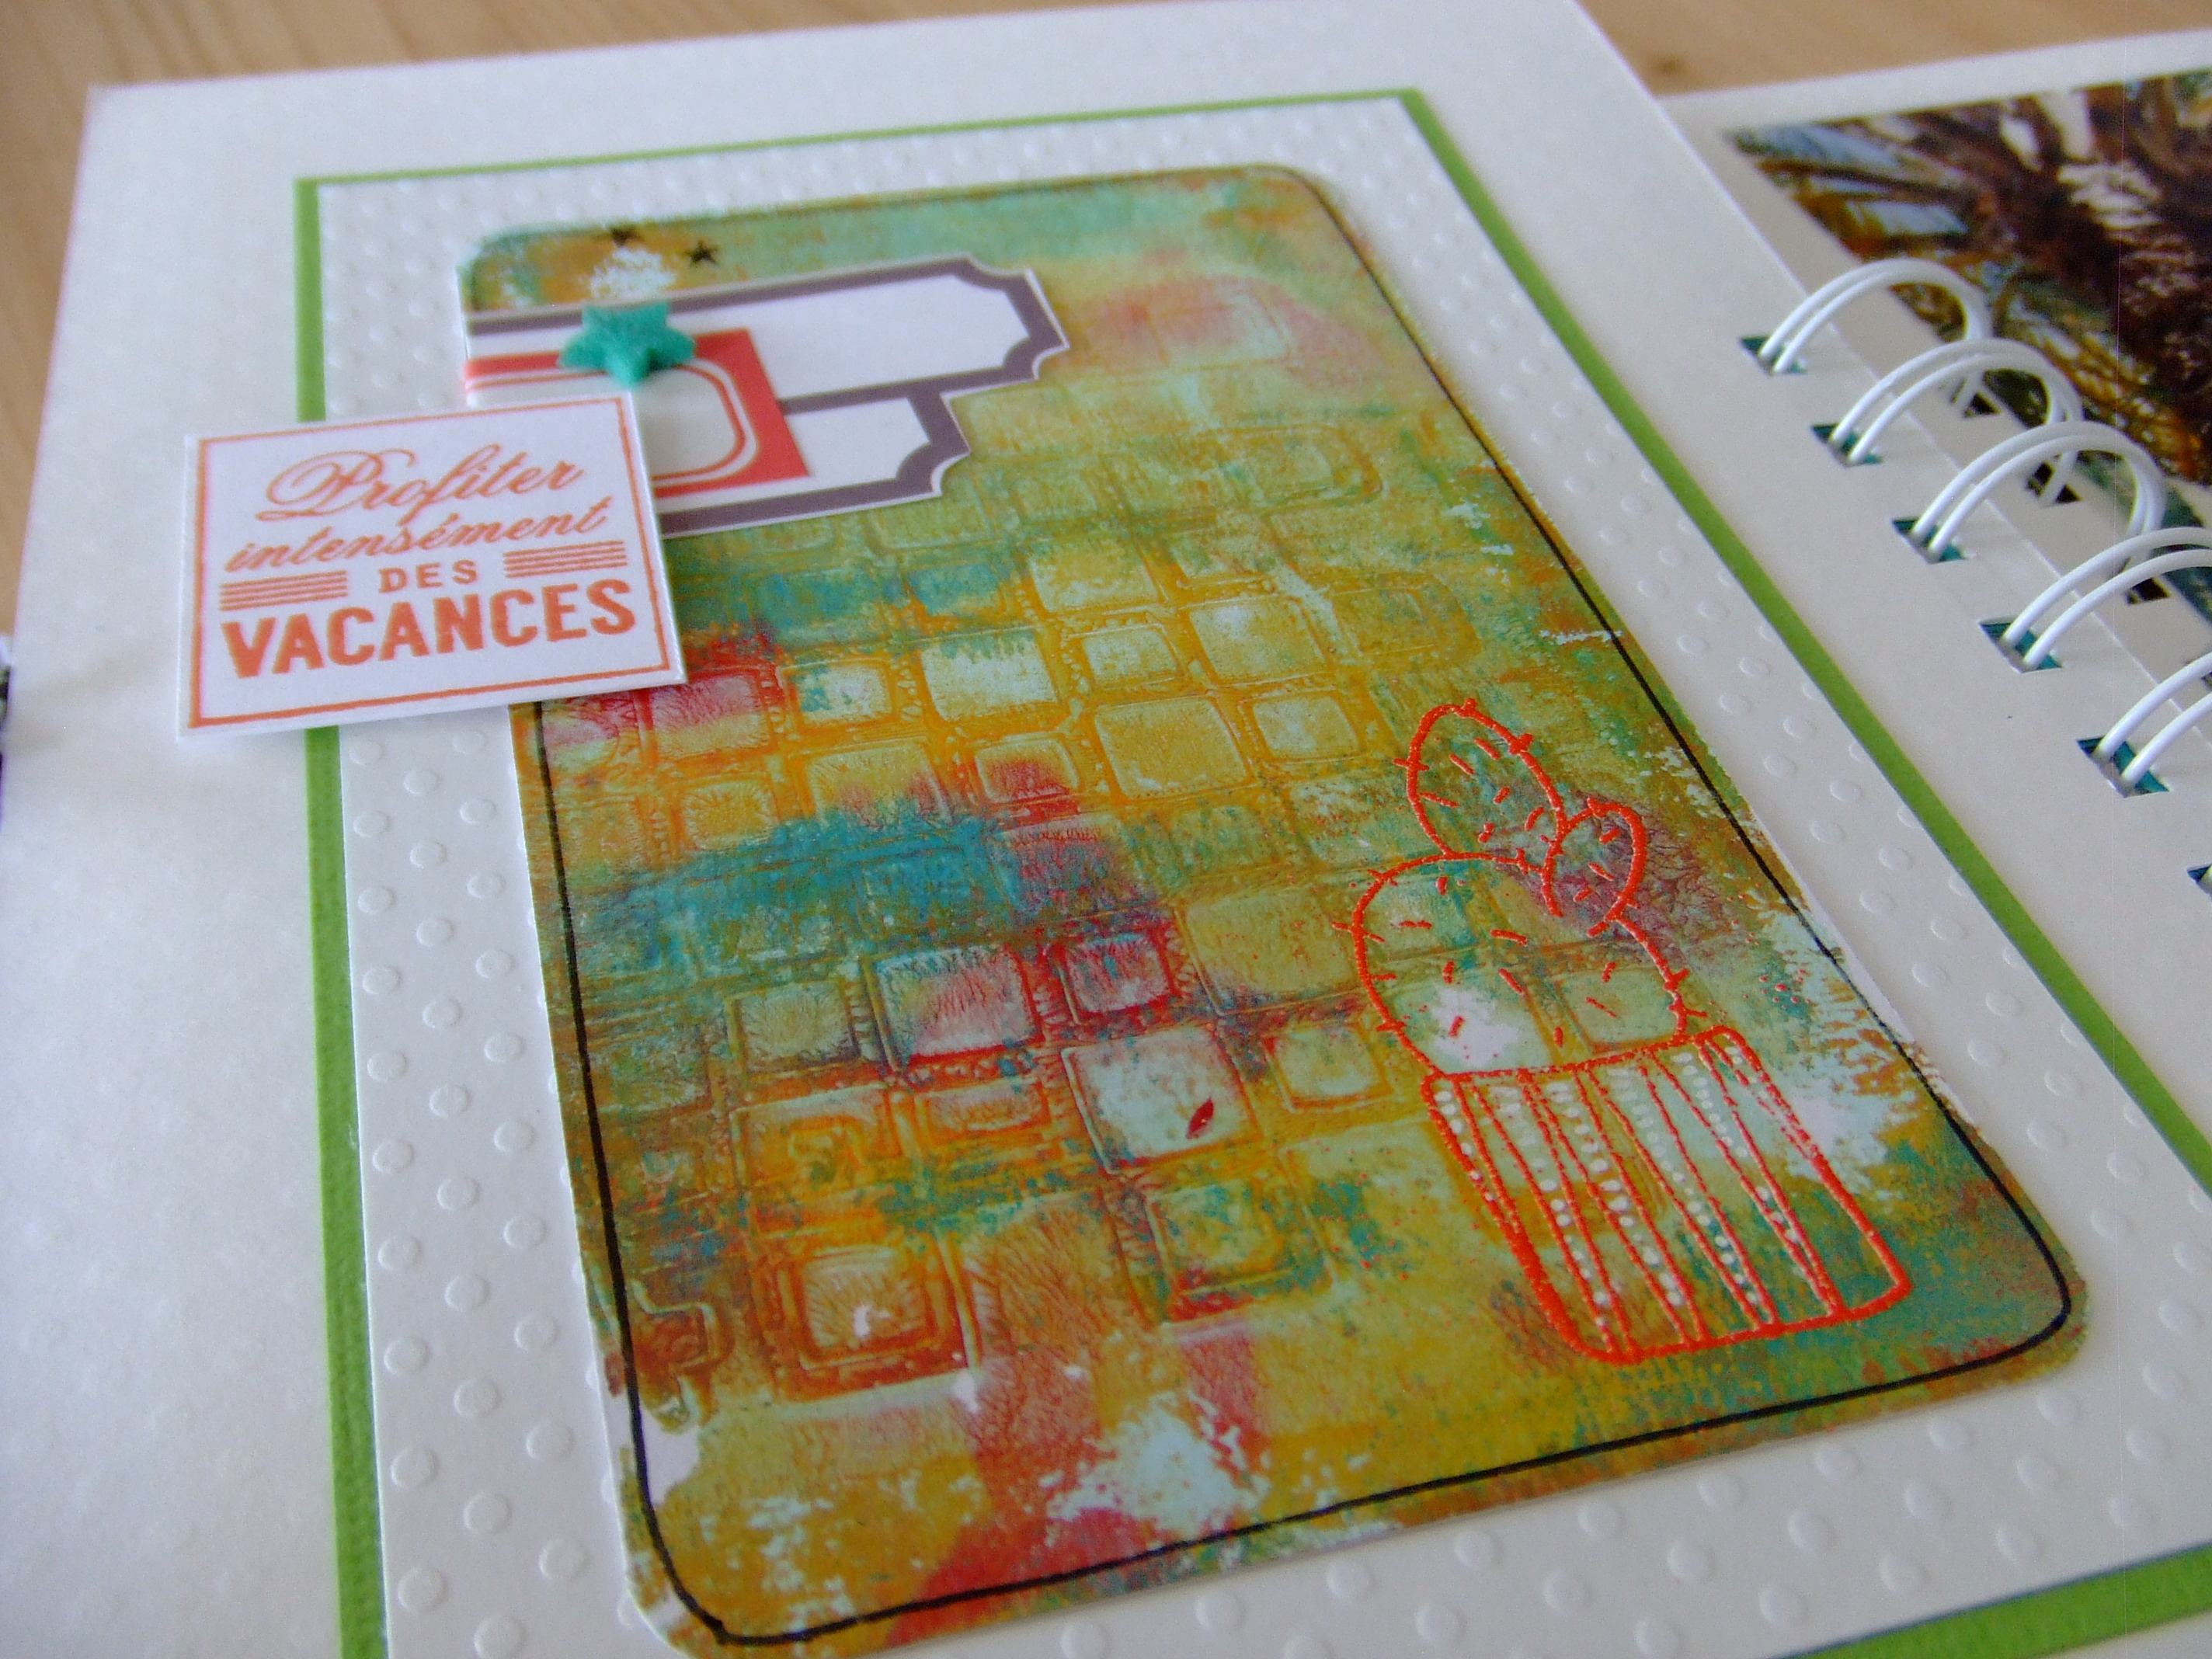 kit mini-album Ô Soleil couleurs-en-folie kits mini-albums scrap scrapbooking atelier stage lille marcq-en-baroeul gelli-plate priplak photos-de-vacances